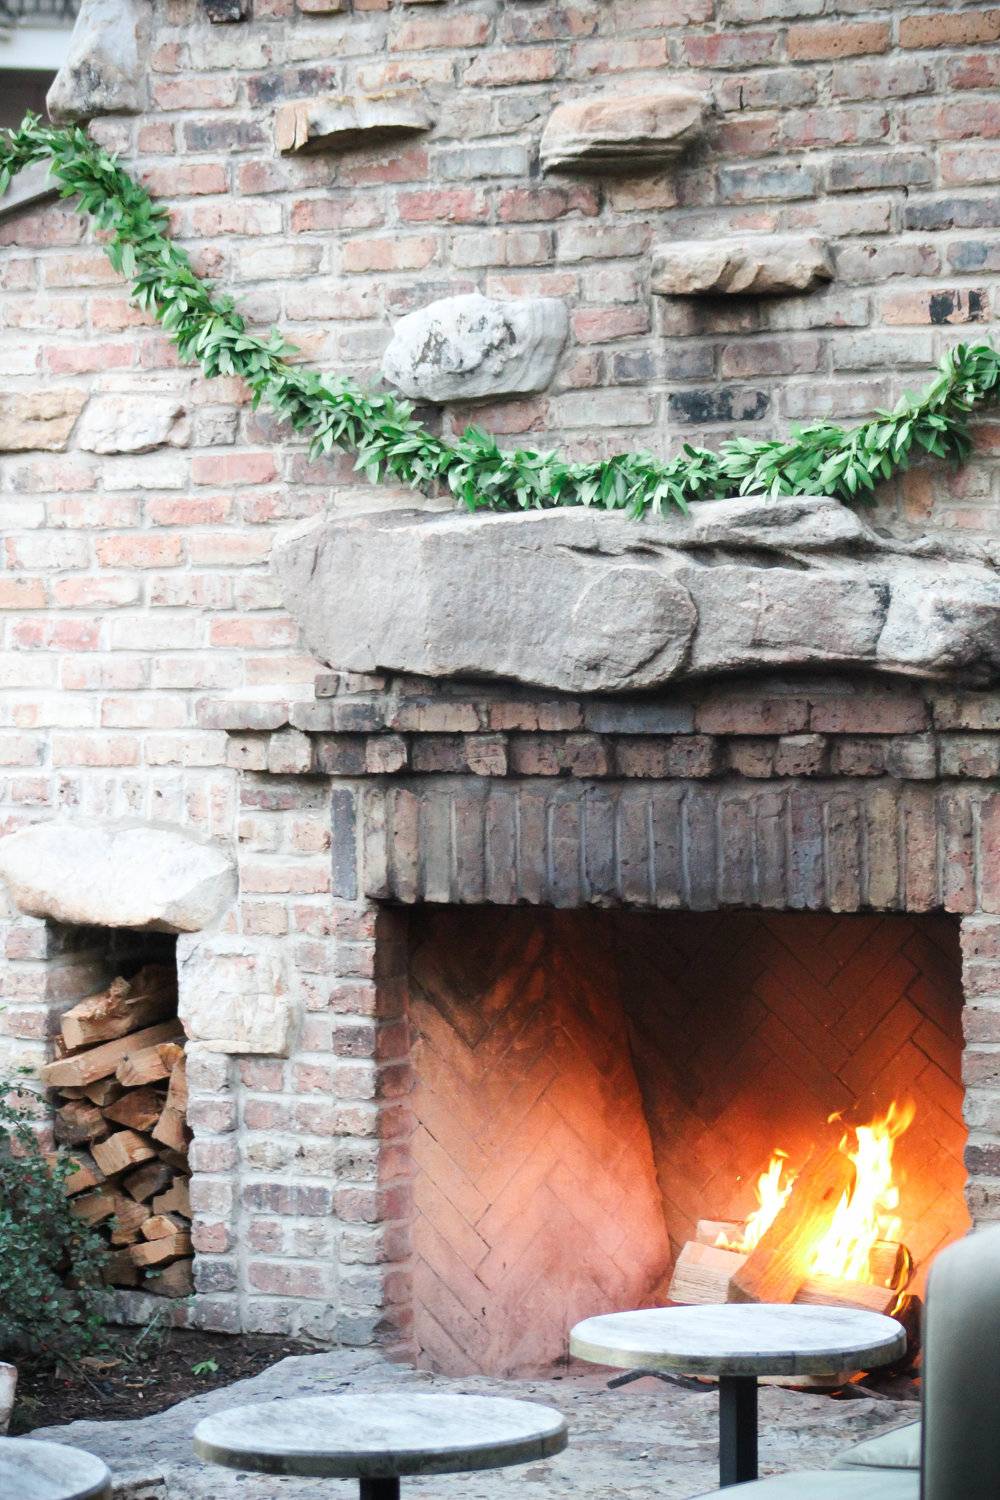 Dawson_Fireplace_outside_110816_KW (1).jpg